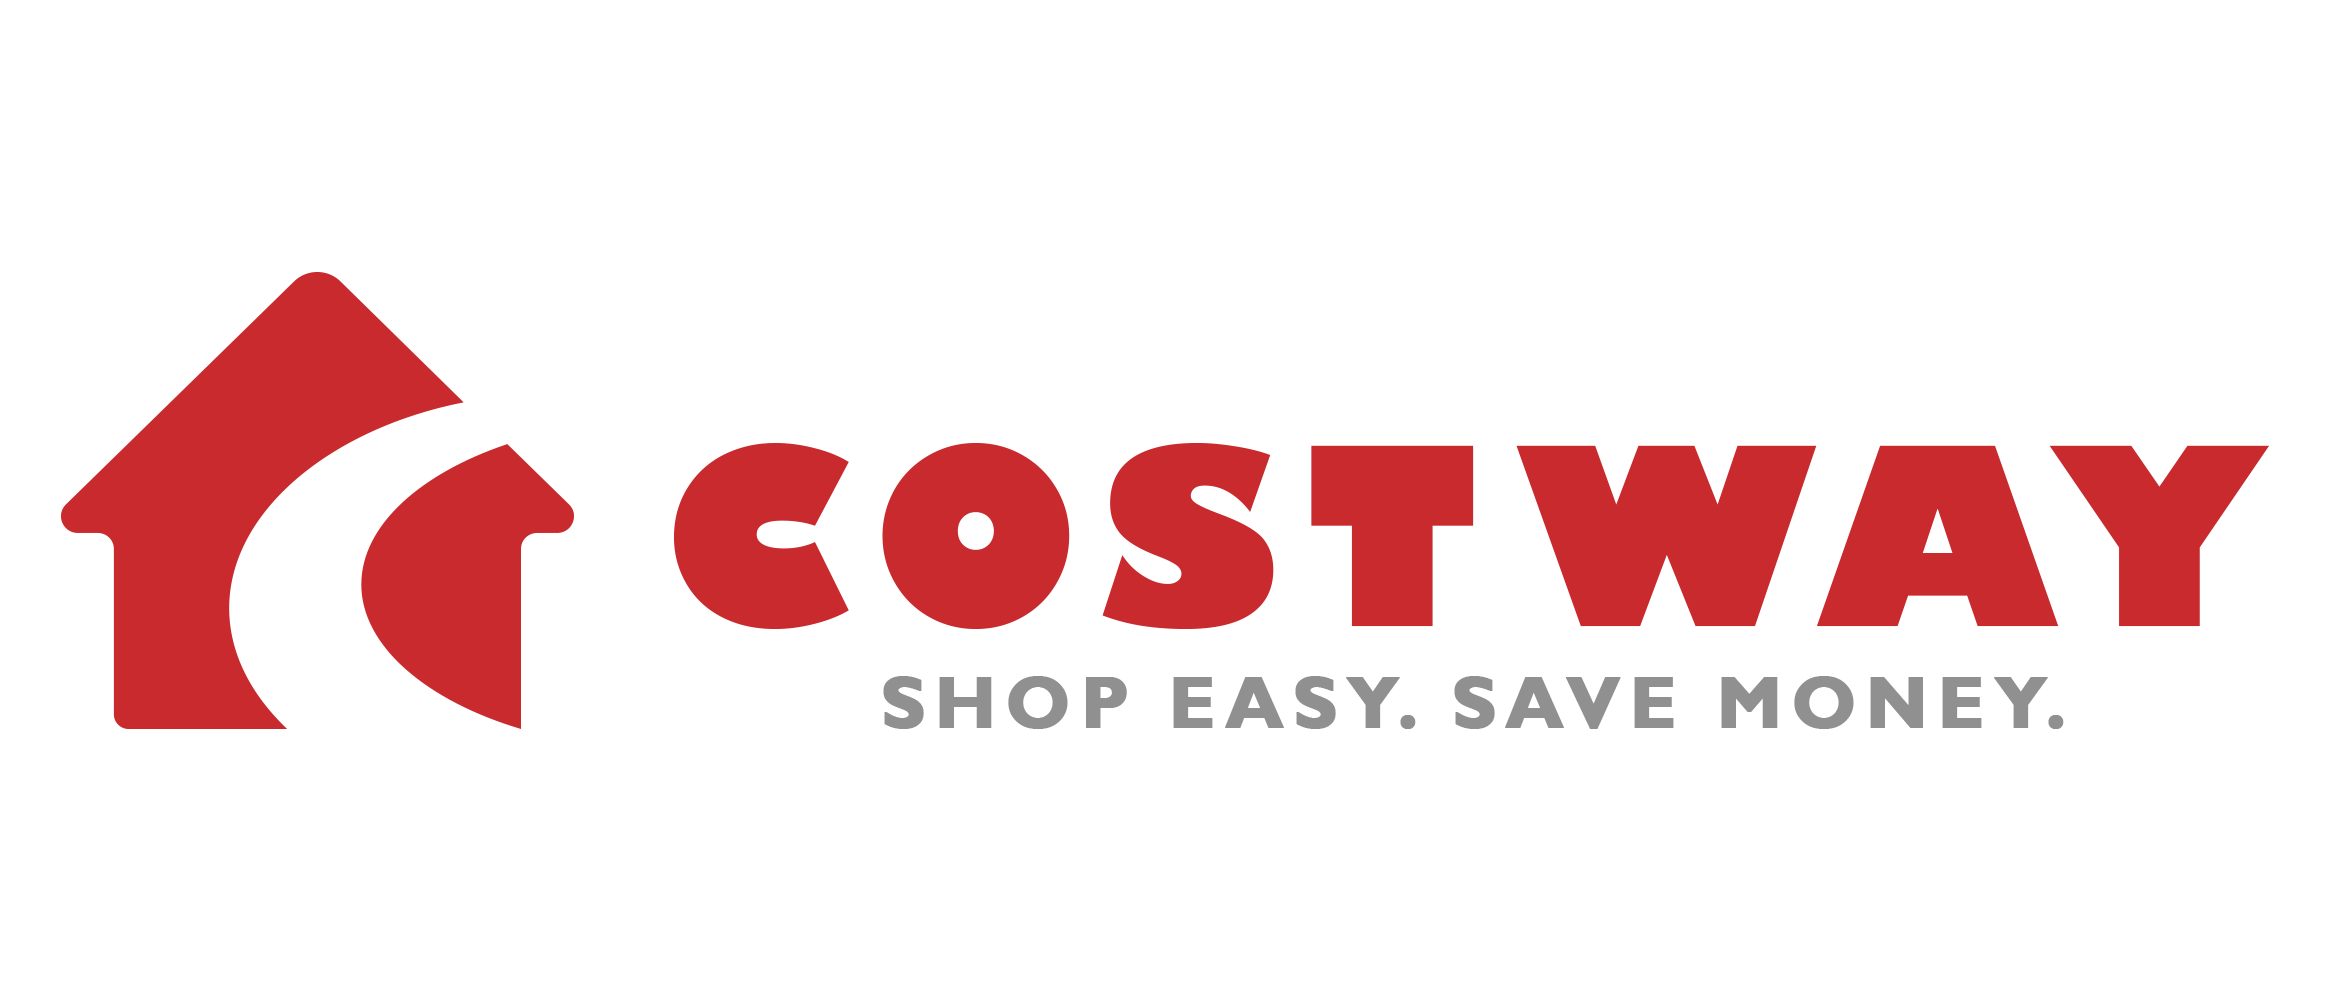 Costway.co.uk